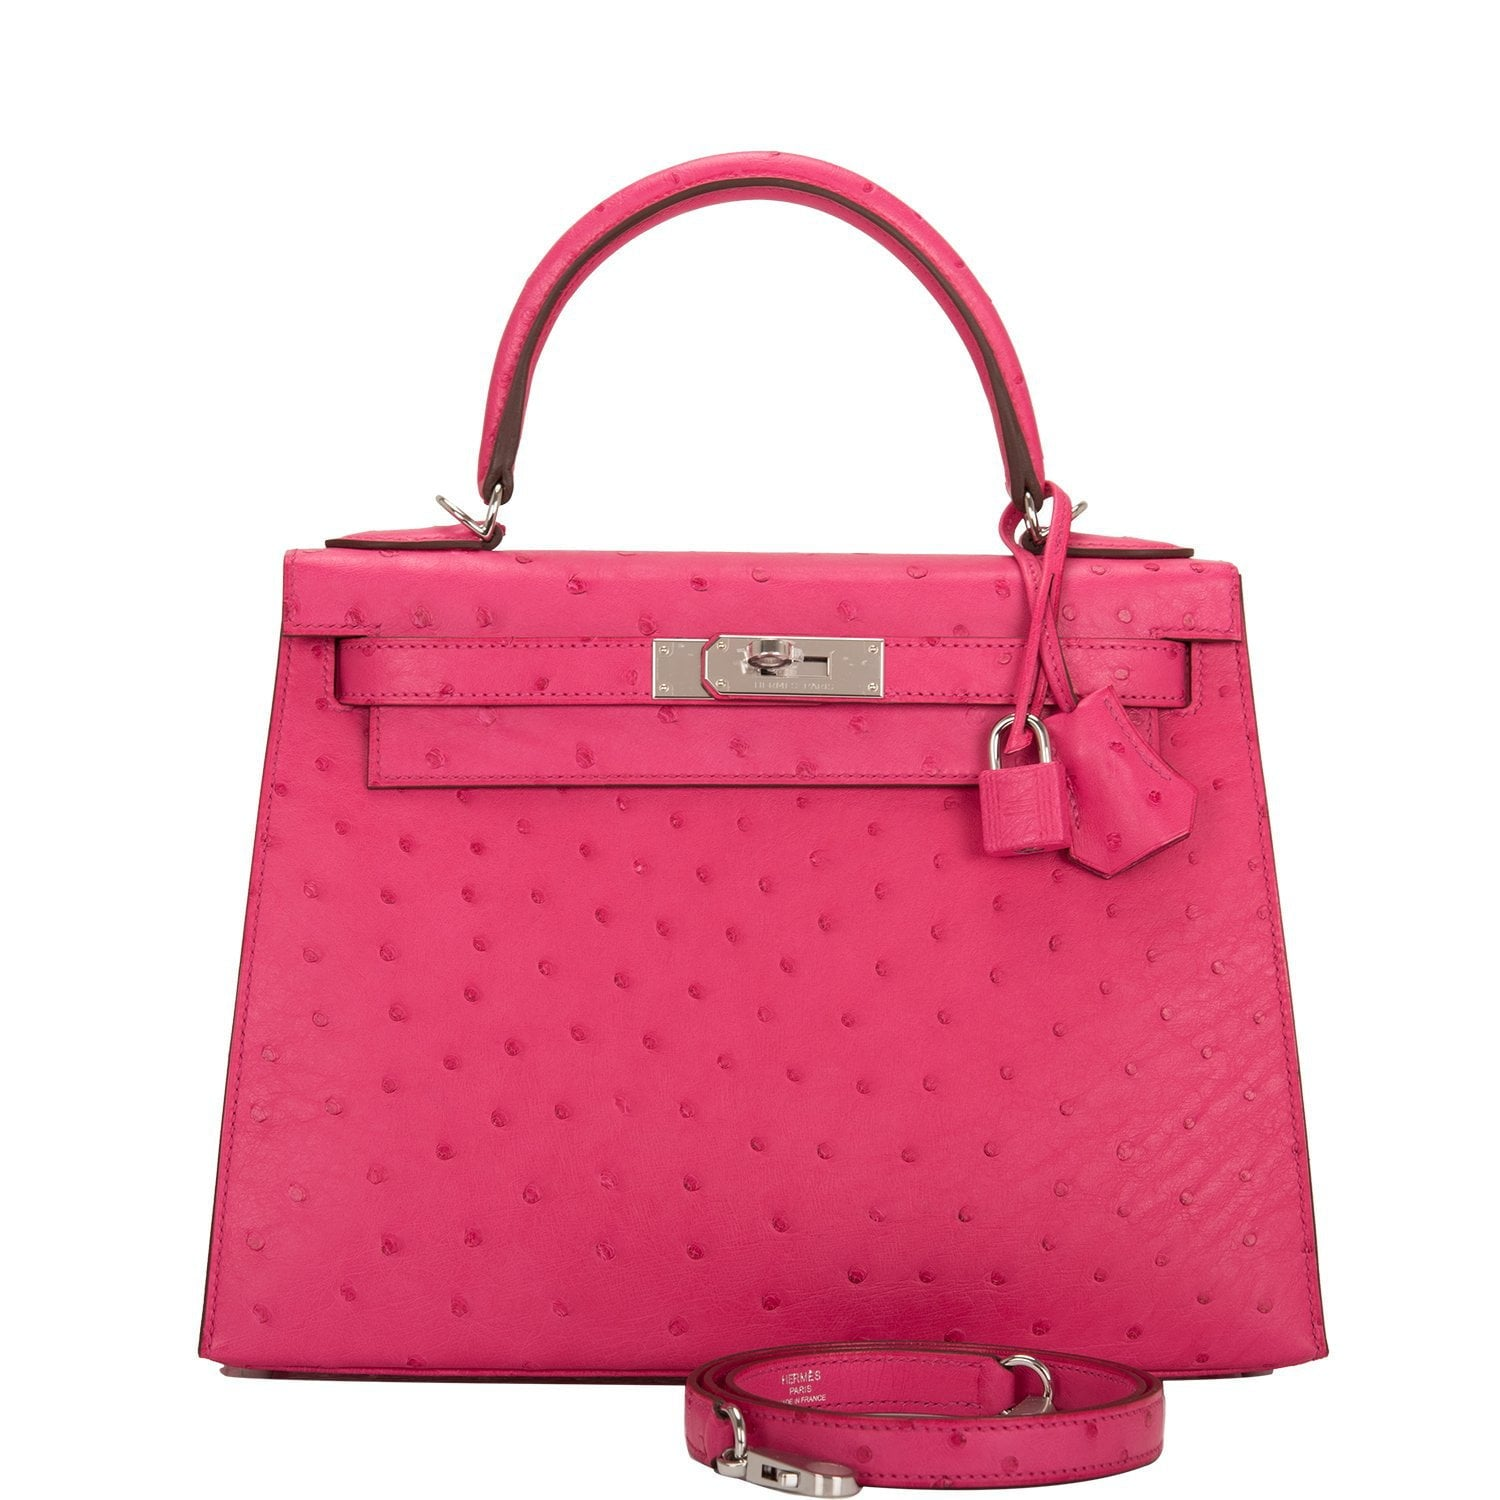 Hermes Rose Tyrien Ostrich Sellier Kelly 28cm Palladium Hardware